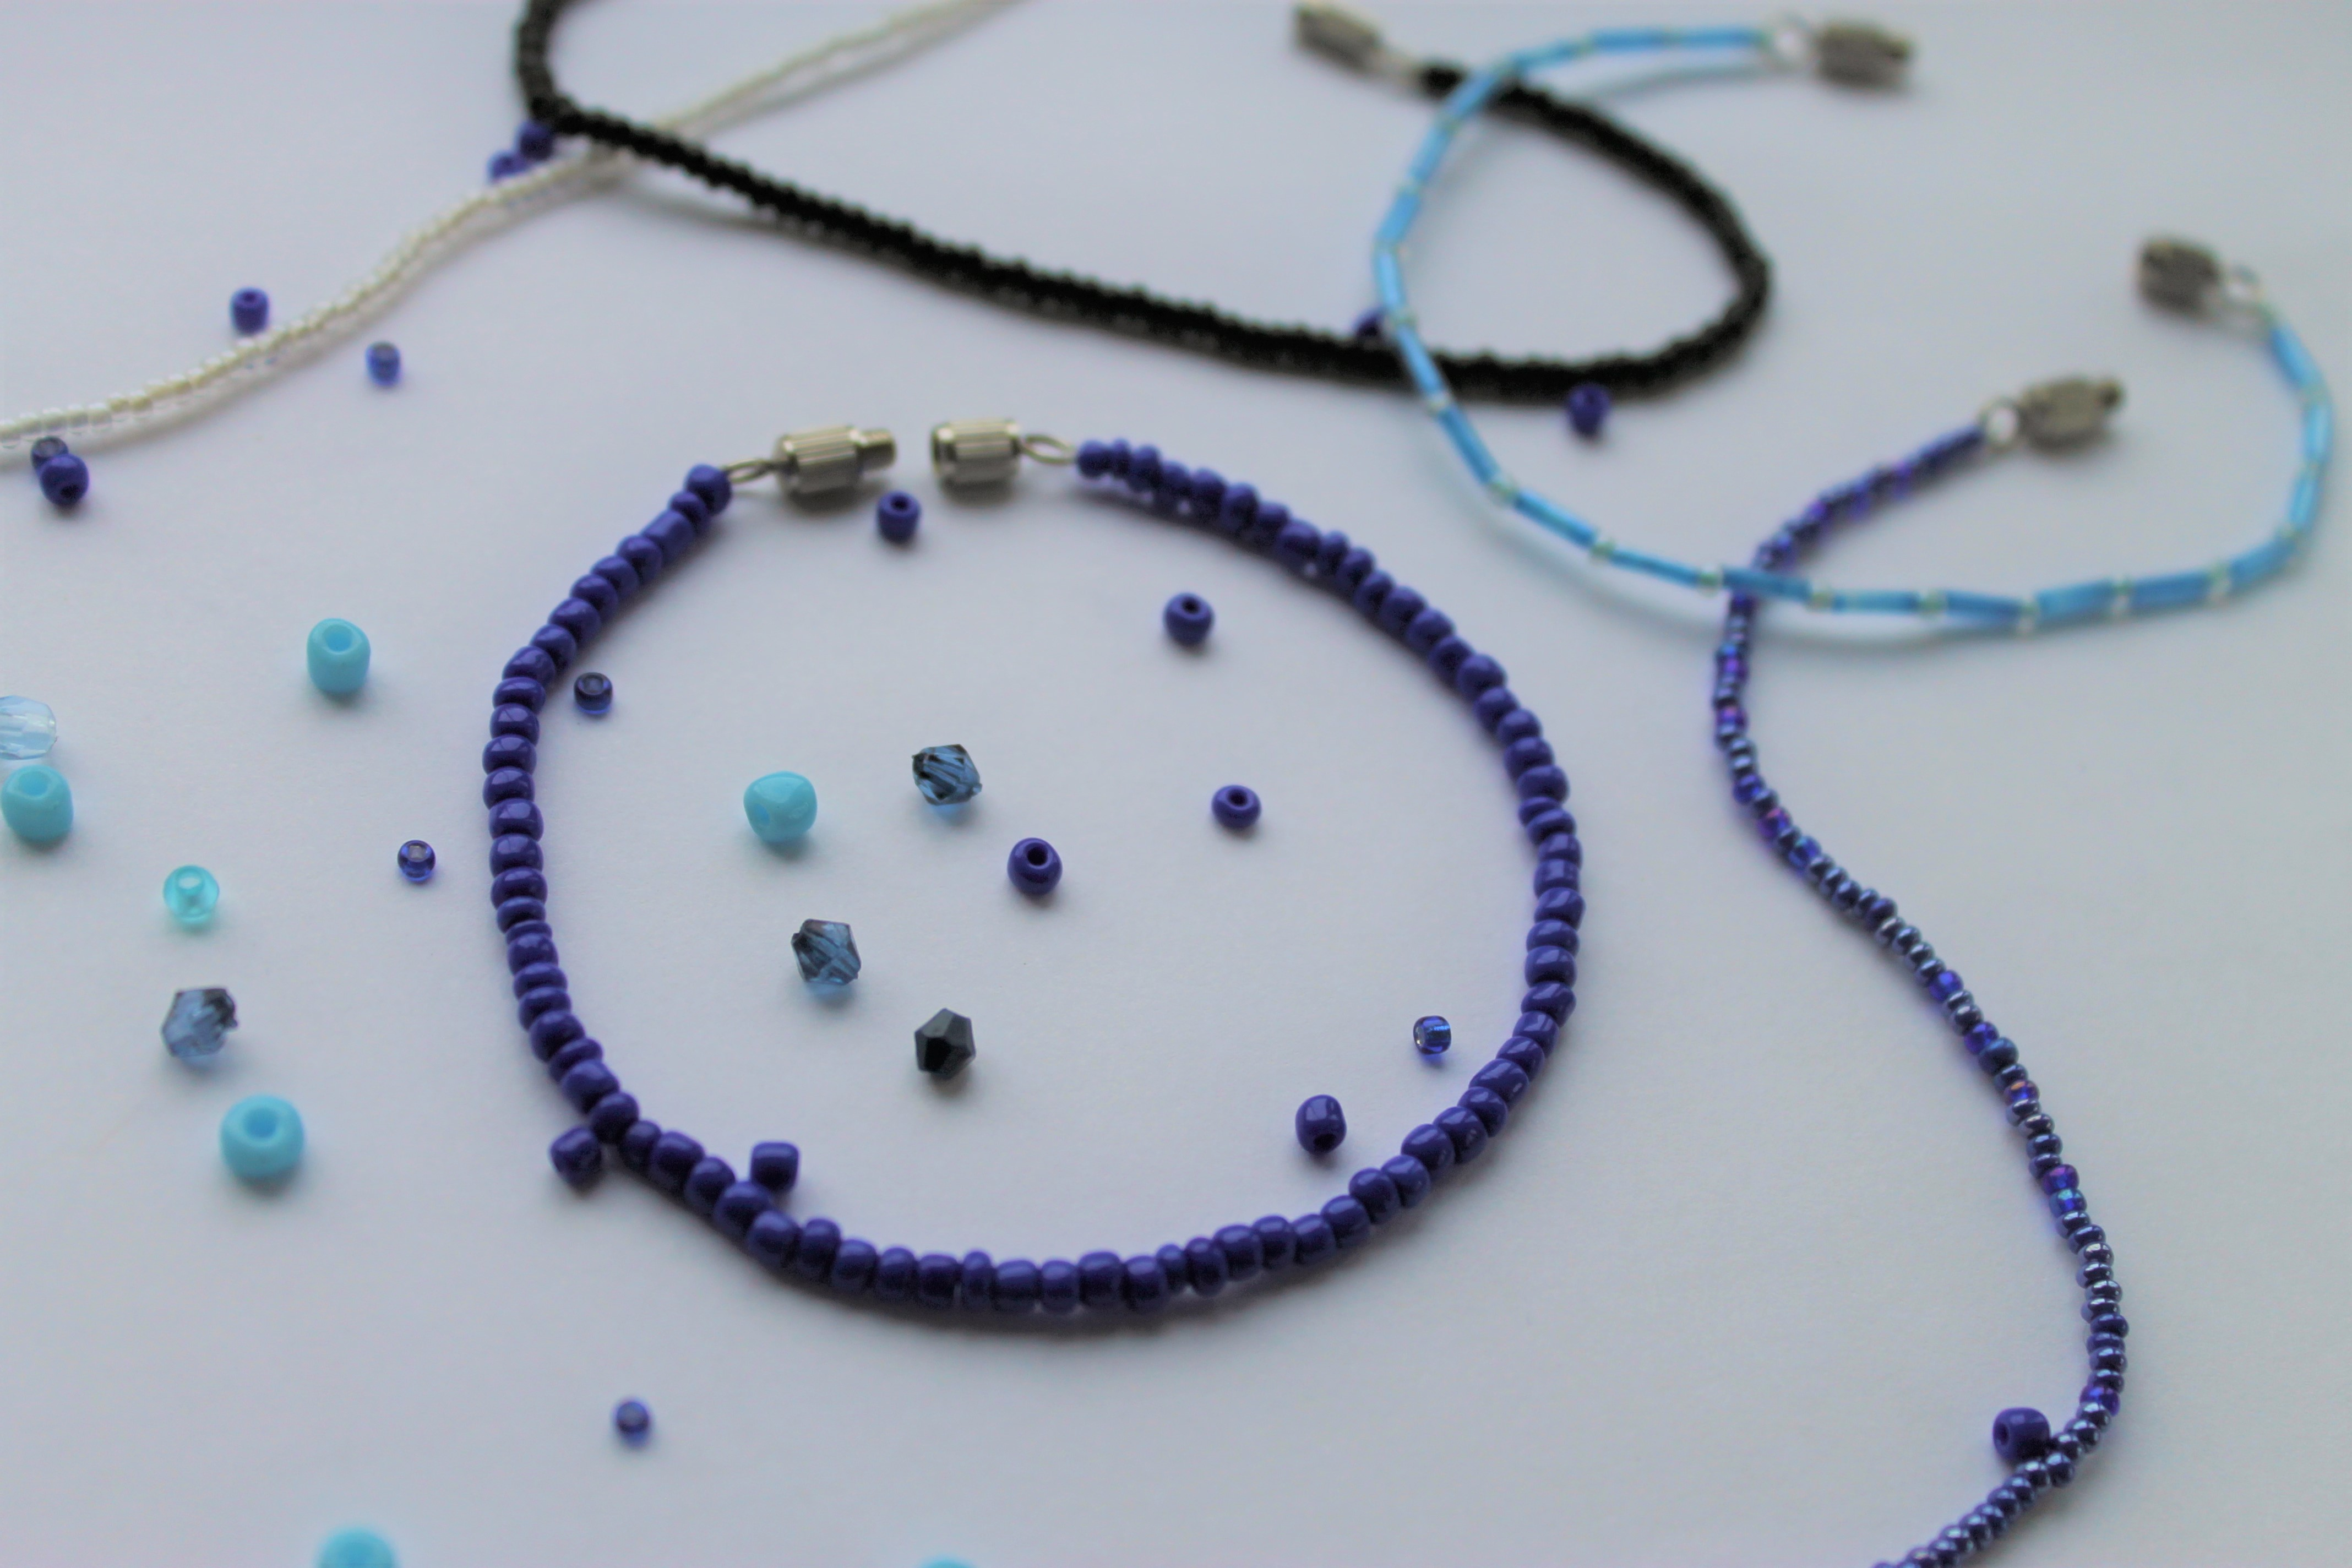 Crafting a Simple yet Elegant Bracelet